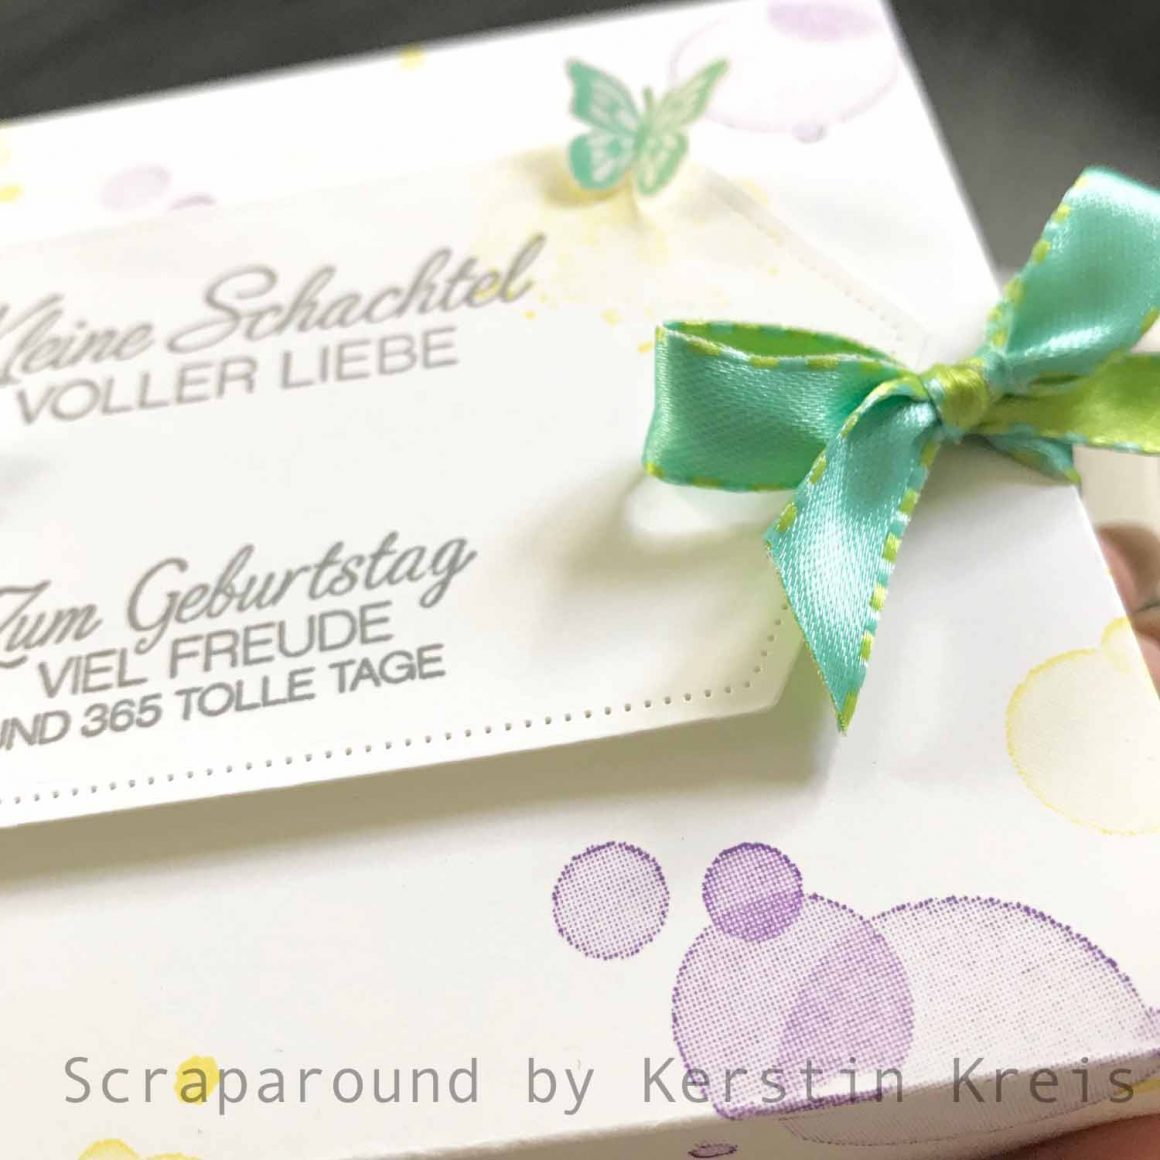 Schachtel voller Liebe – GDP#189 Global Design Projekt